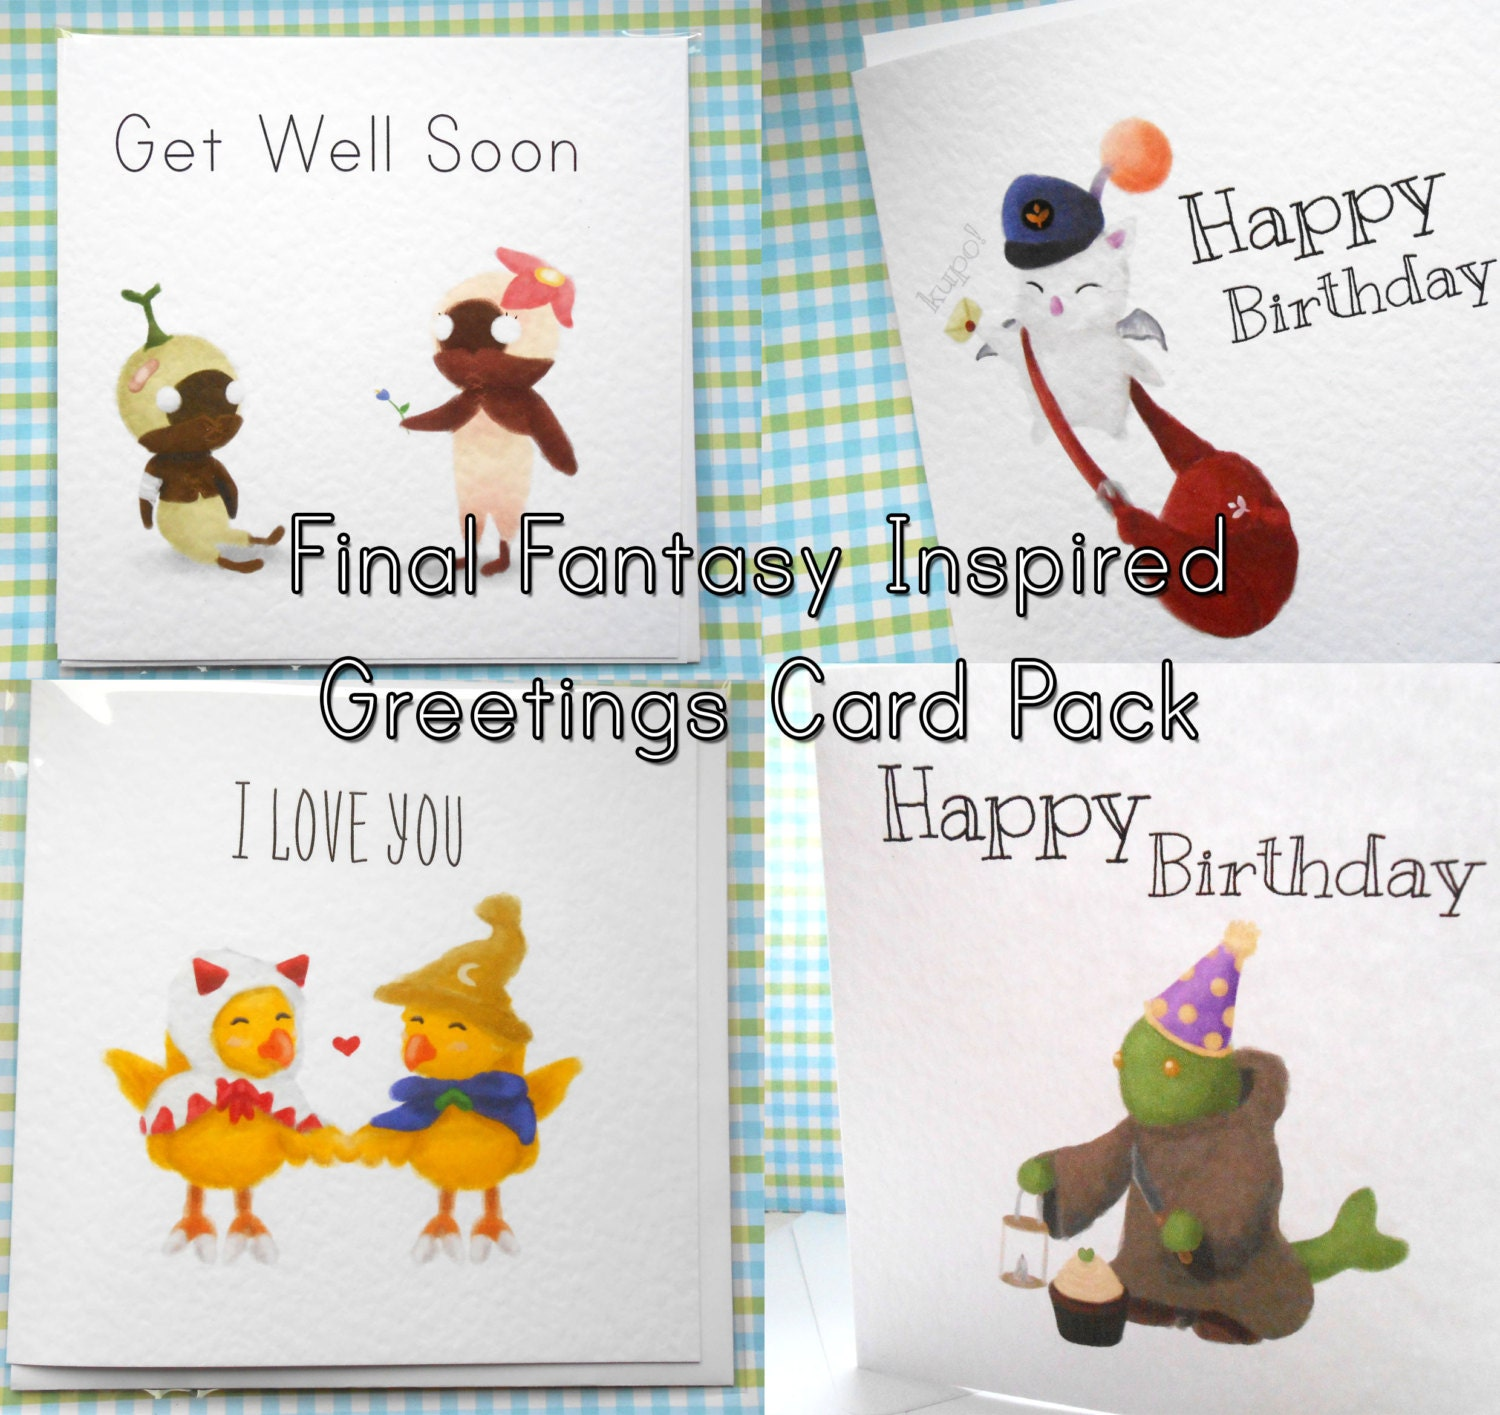 Delivery Moogle Birthday Card Final Fantasy Themed: Final Fantasy Inspired Greetings Card Pack By Squishyscribbles